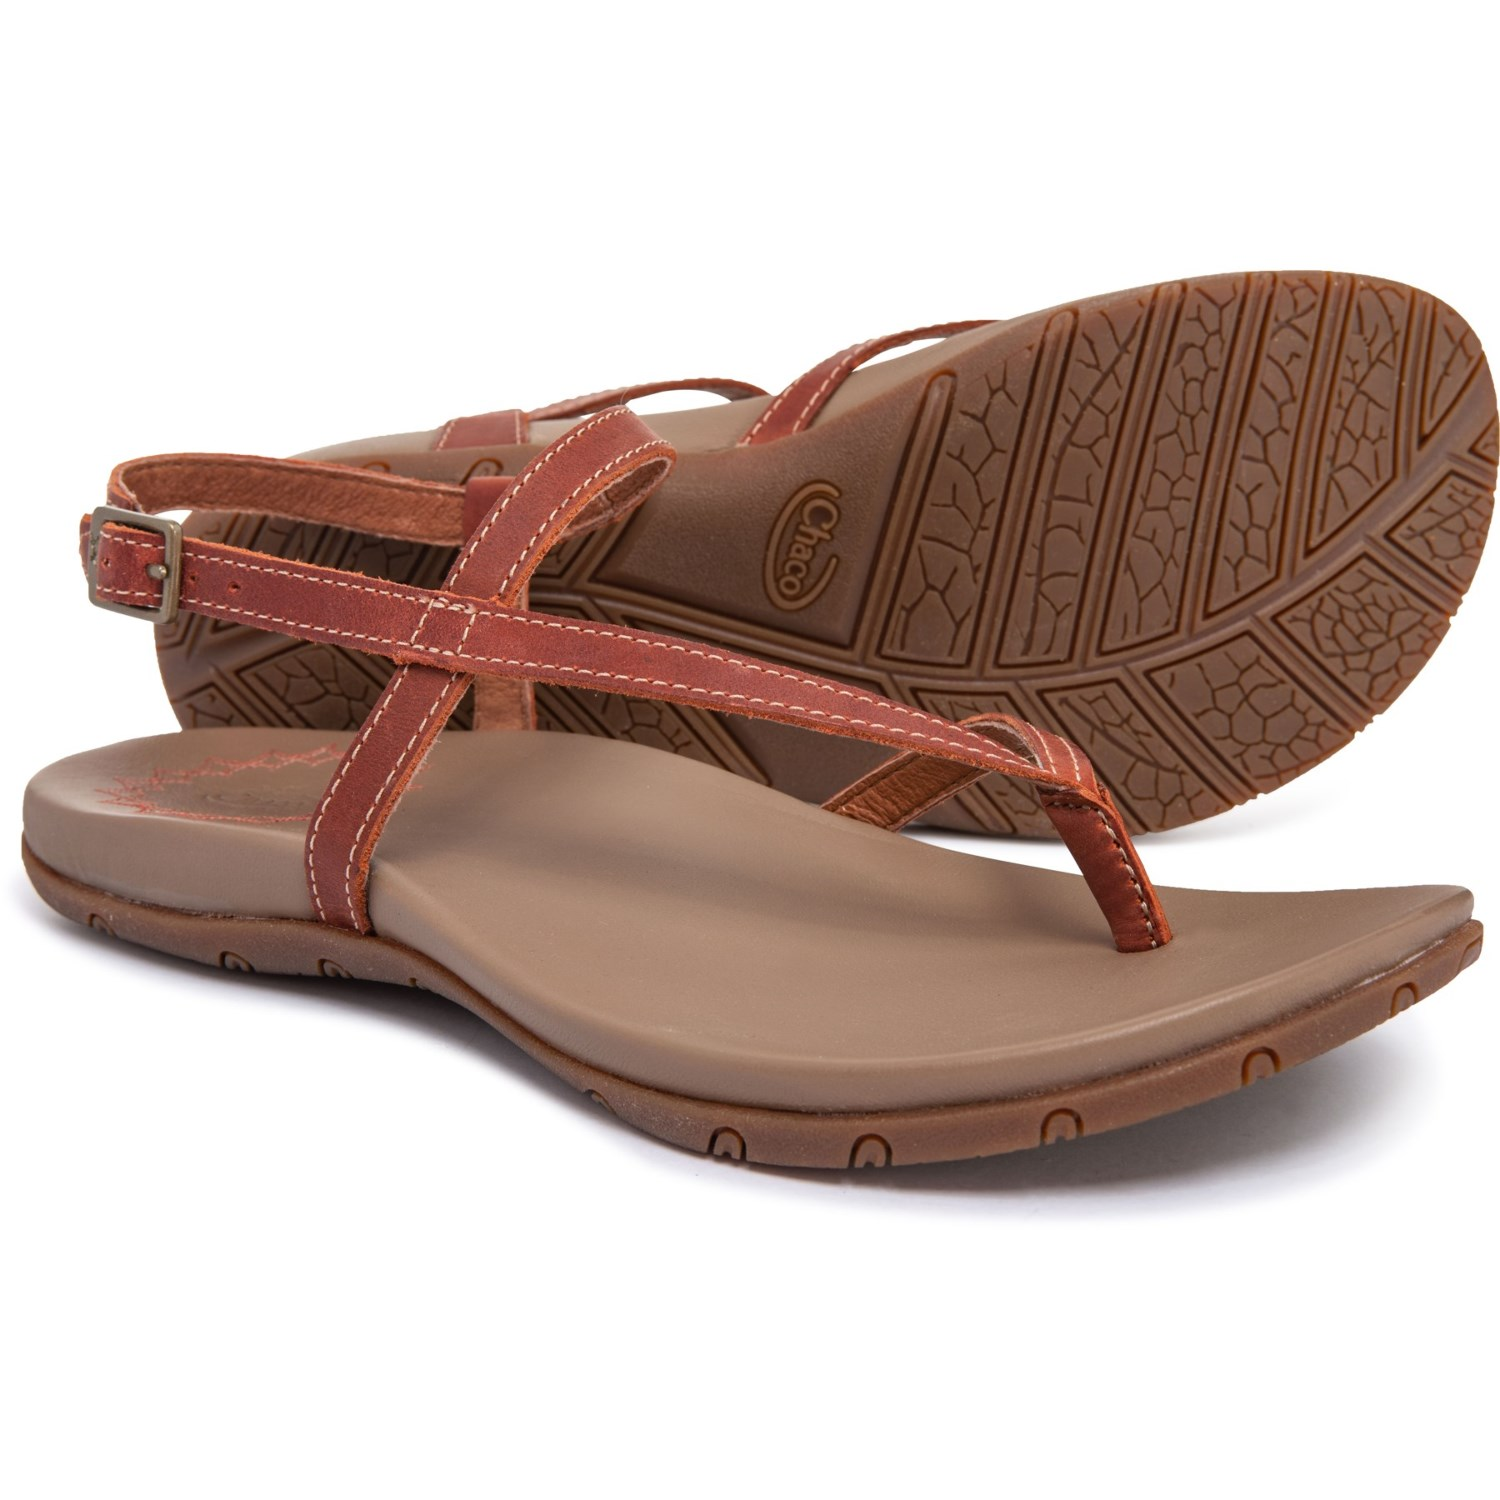 adafce7049ea Chaco Rowan Thong Sandals - Leather (For Women) in Sienna ...